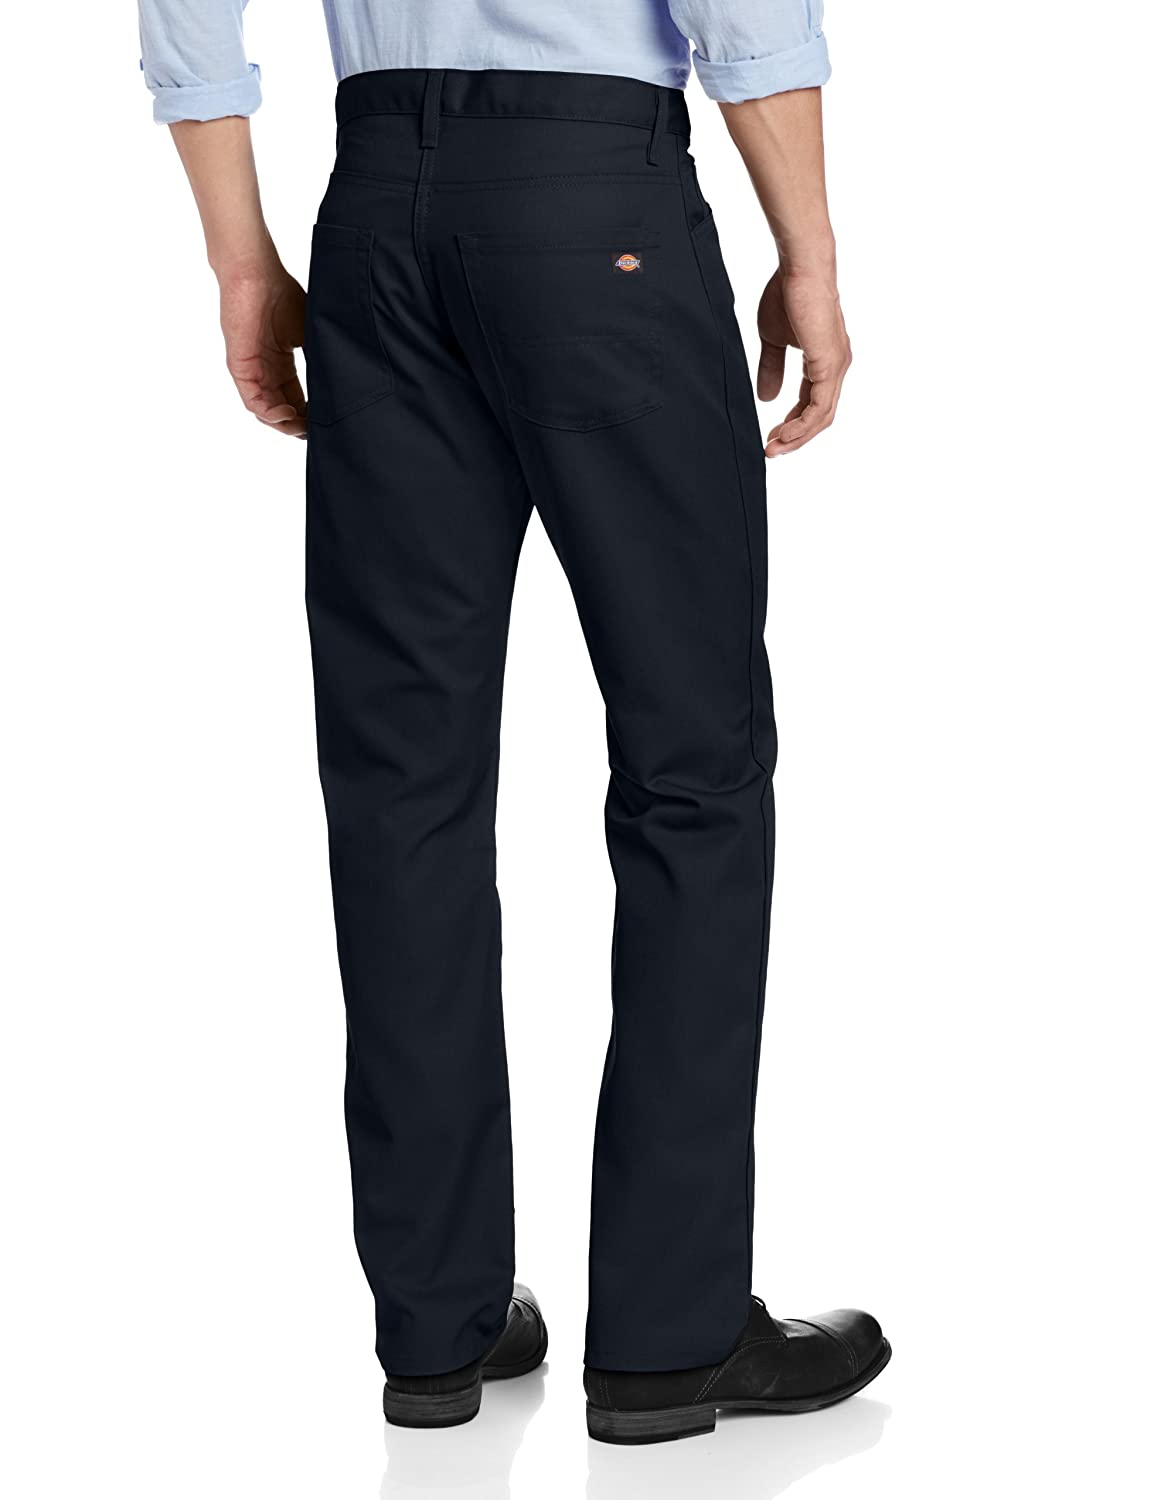 6e5d8e280a4d65 Dickies Men's Slim Straight Fit Light Weight 5-Pocket Twill Pant:  Amazon.co.uk: Clothing